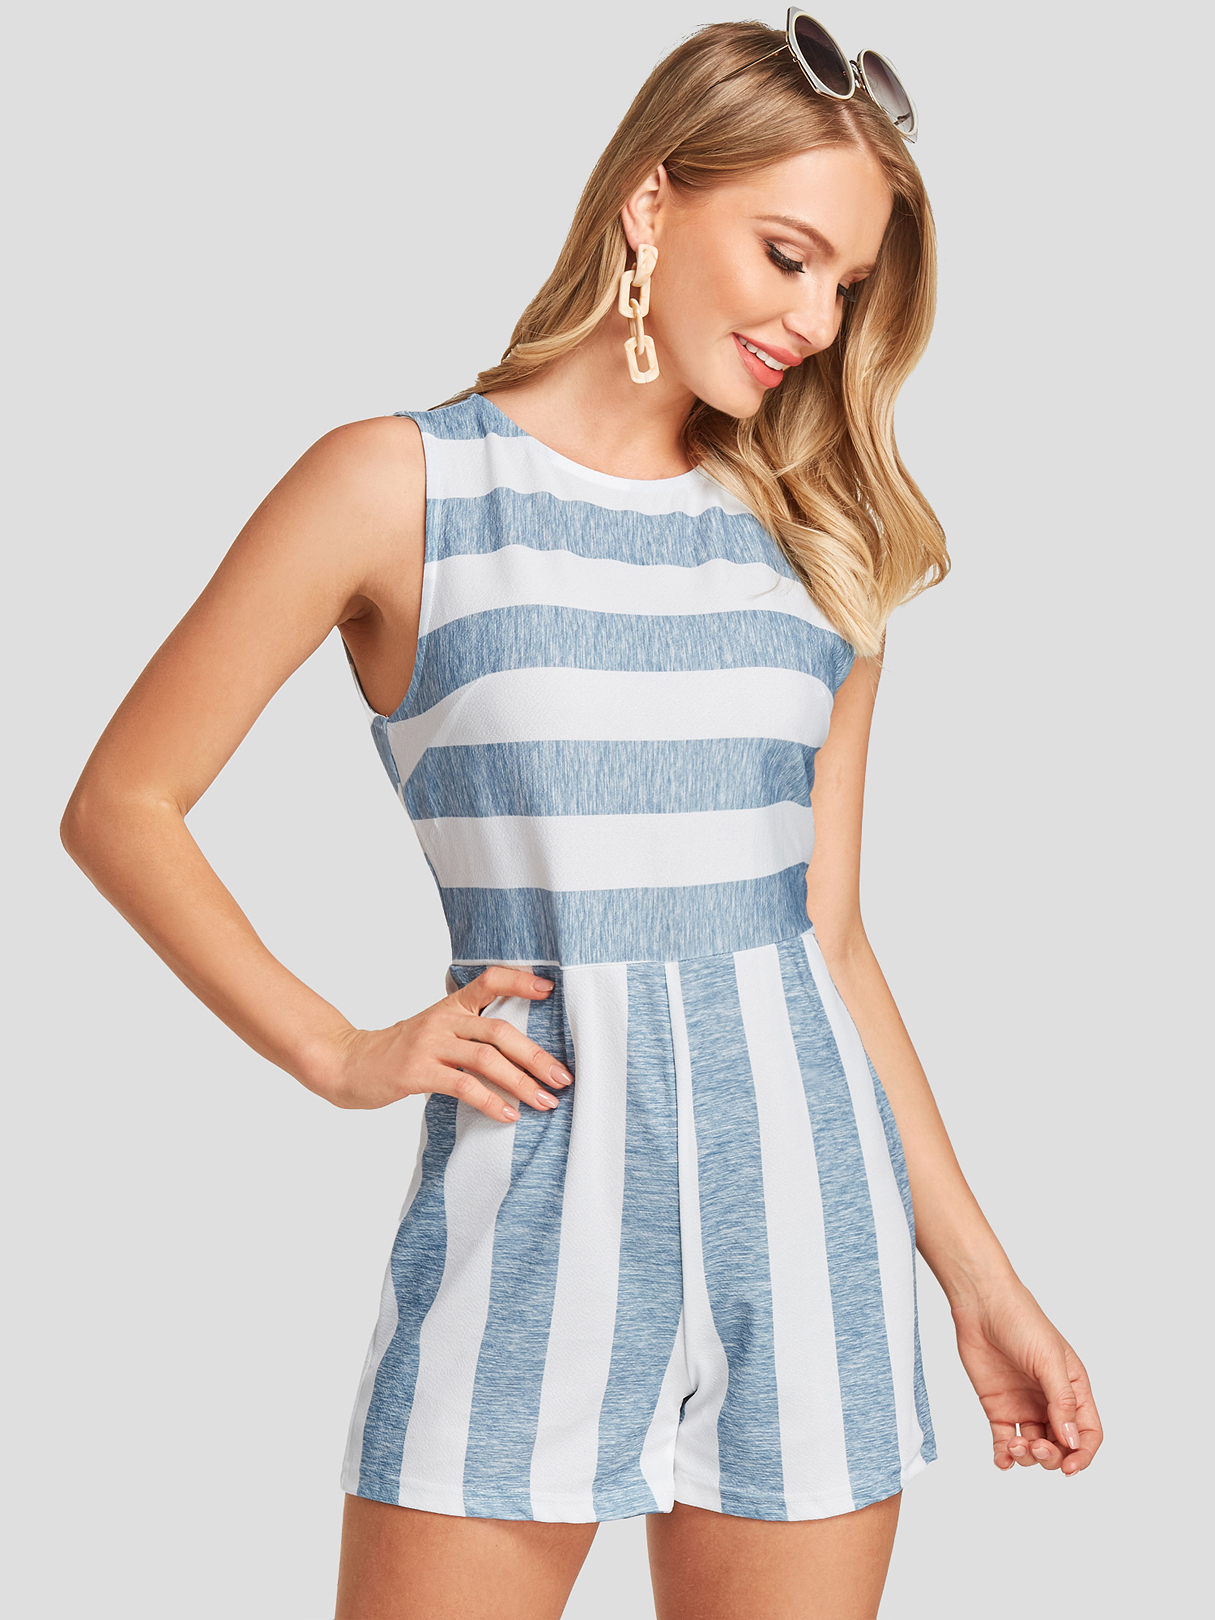 Color Block Stripe Backless Design Round Neck Sleeveless Loose Waist Playsuit, Multi